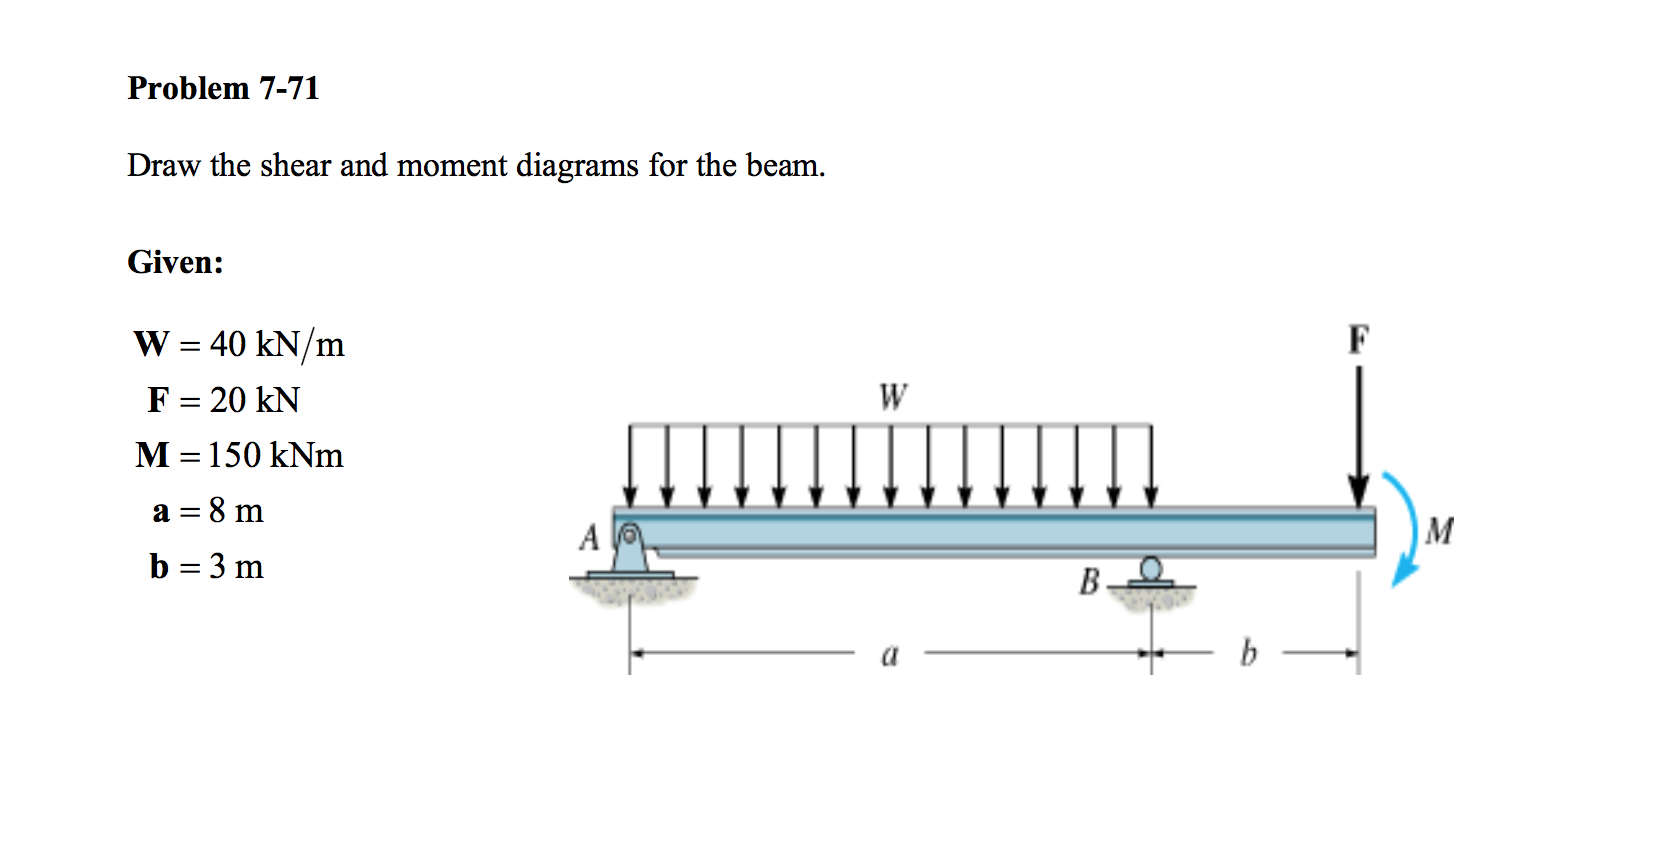 solved draw the shear and moment diagrams for the beam g beam design formulas shear and moment diagrams beam formulas with shear and moment diagrams